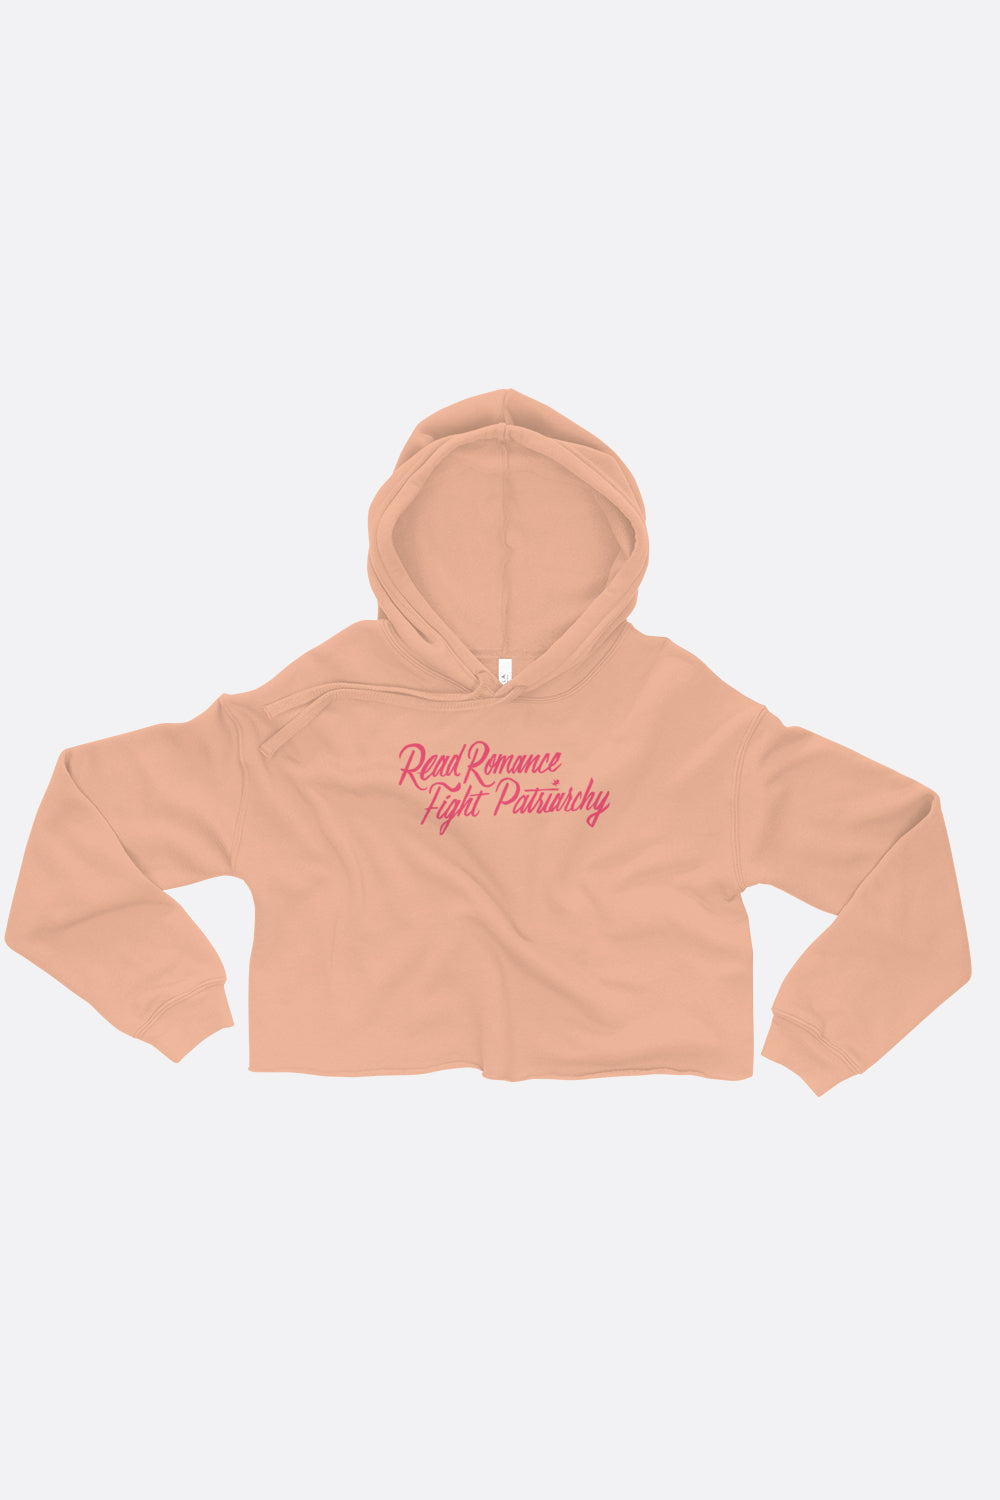 Read Romance, Fight Patriarchy Crop Hoodie | Sarah MacLean